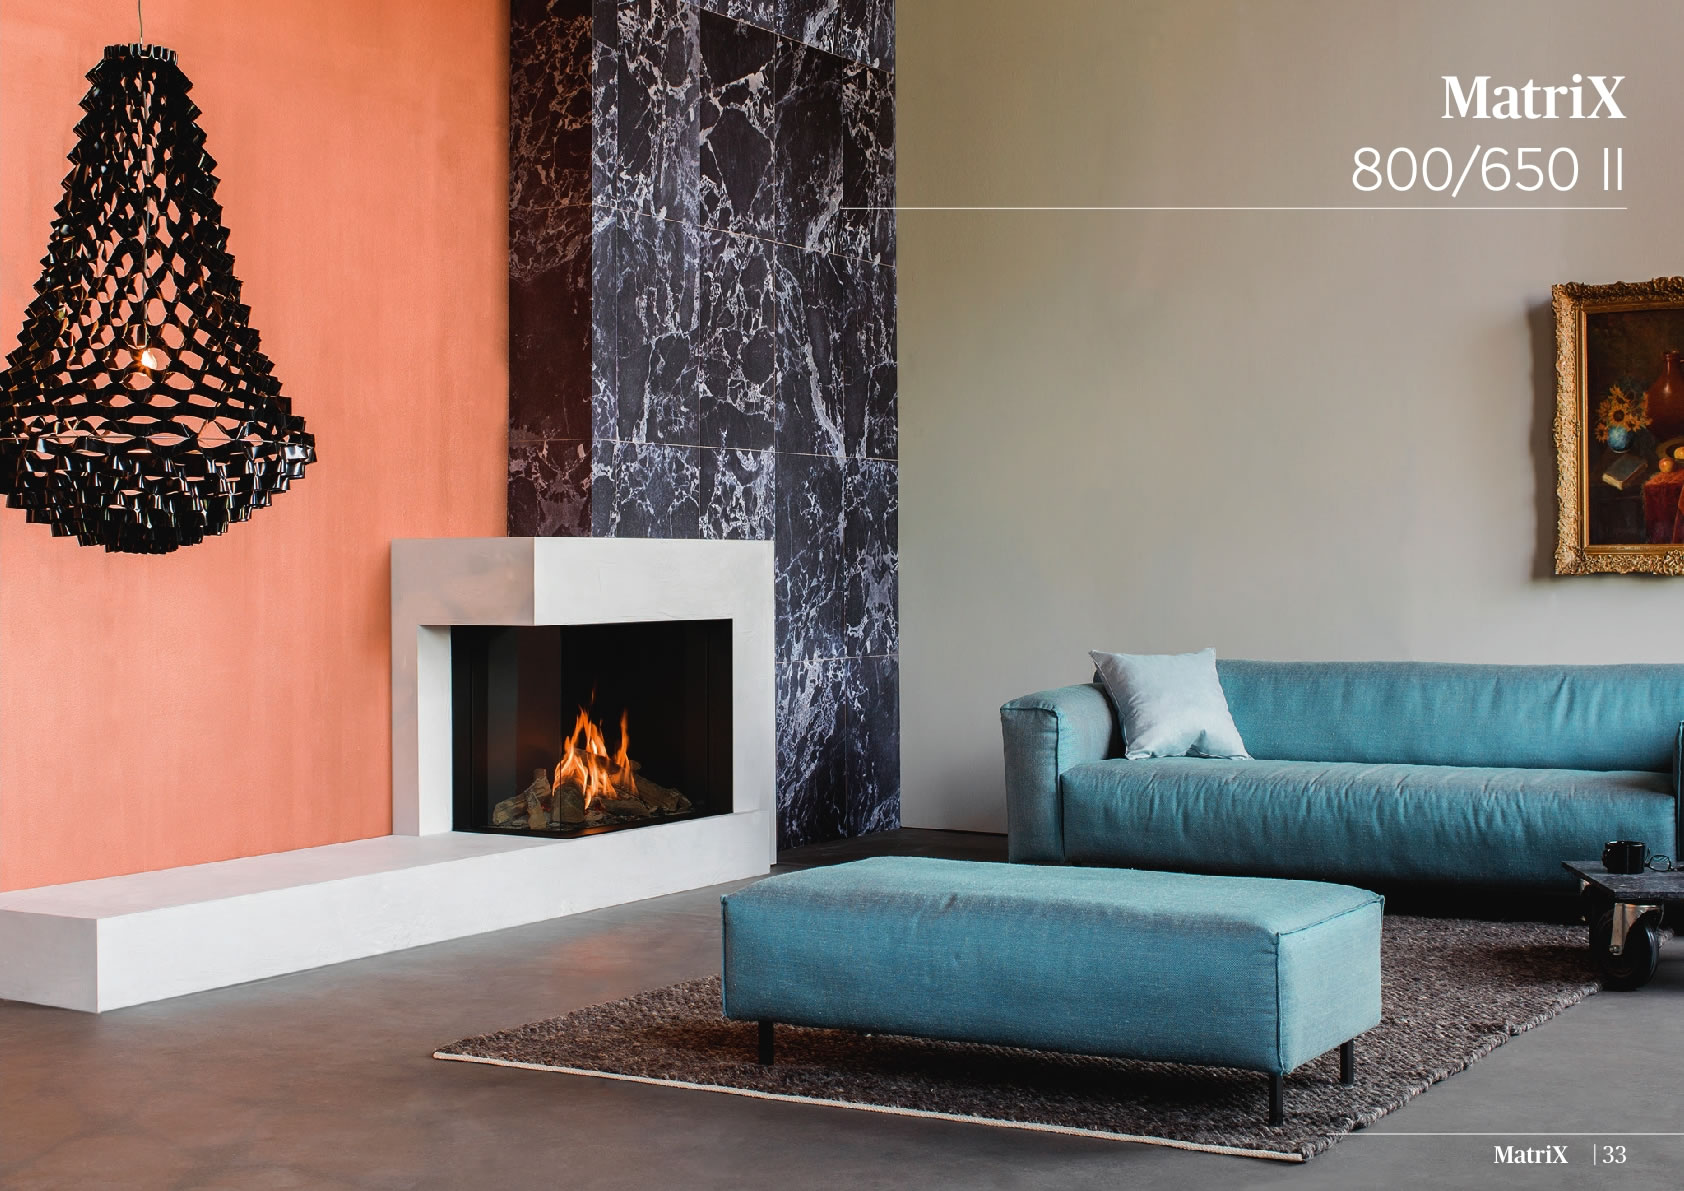 Faber Natural Gas Fireplaces - Matrix 800 / 650 II